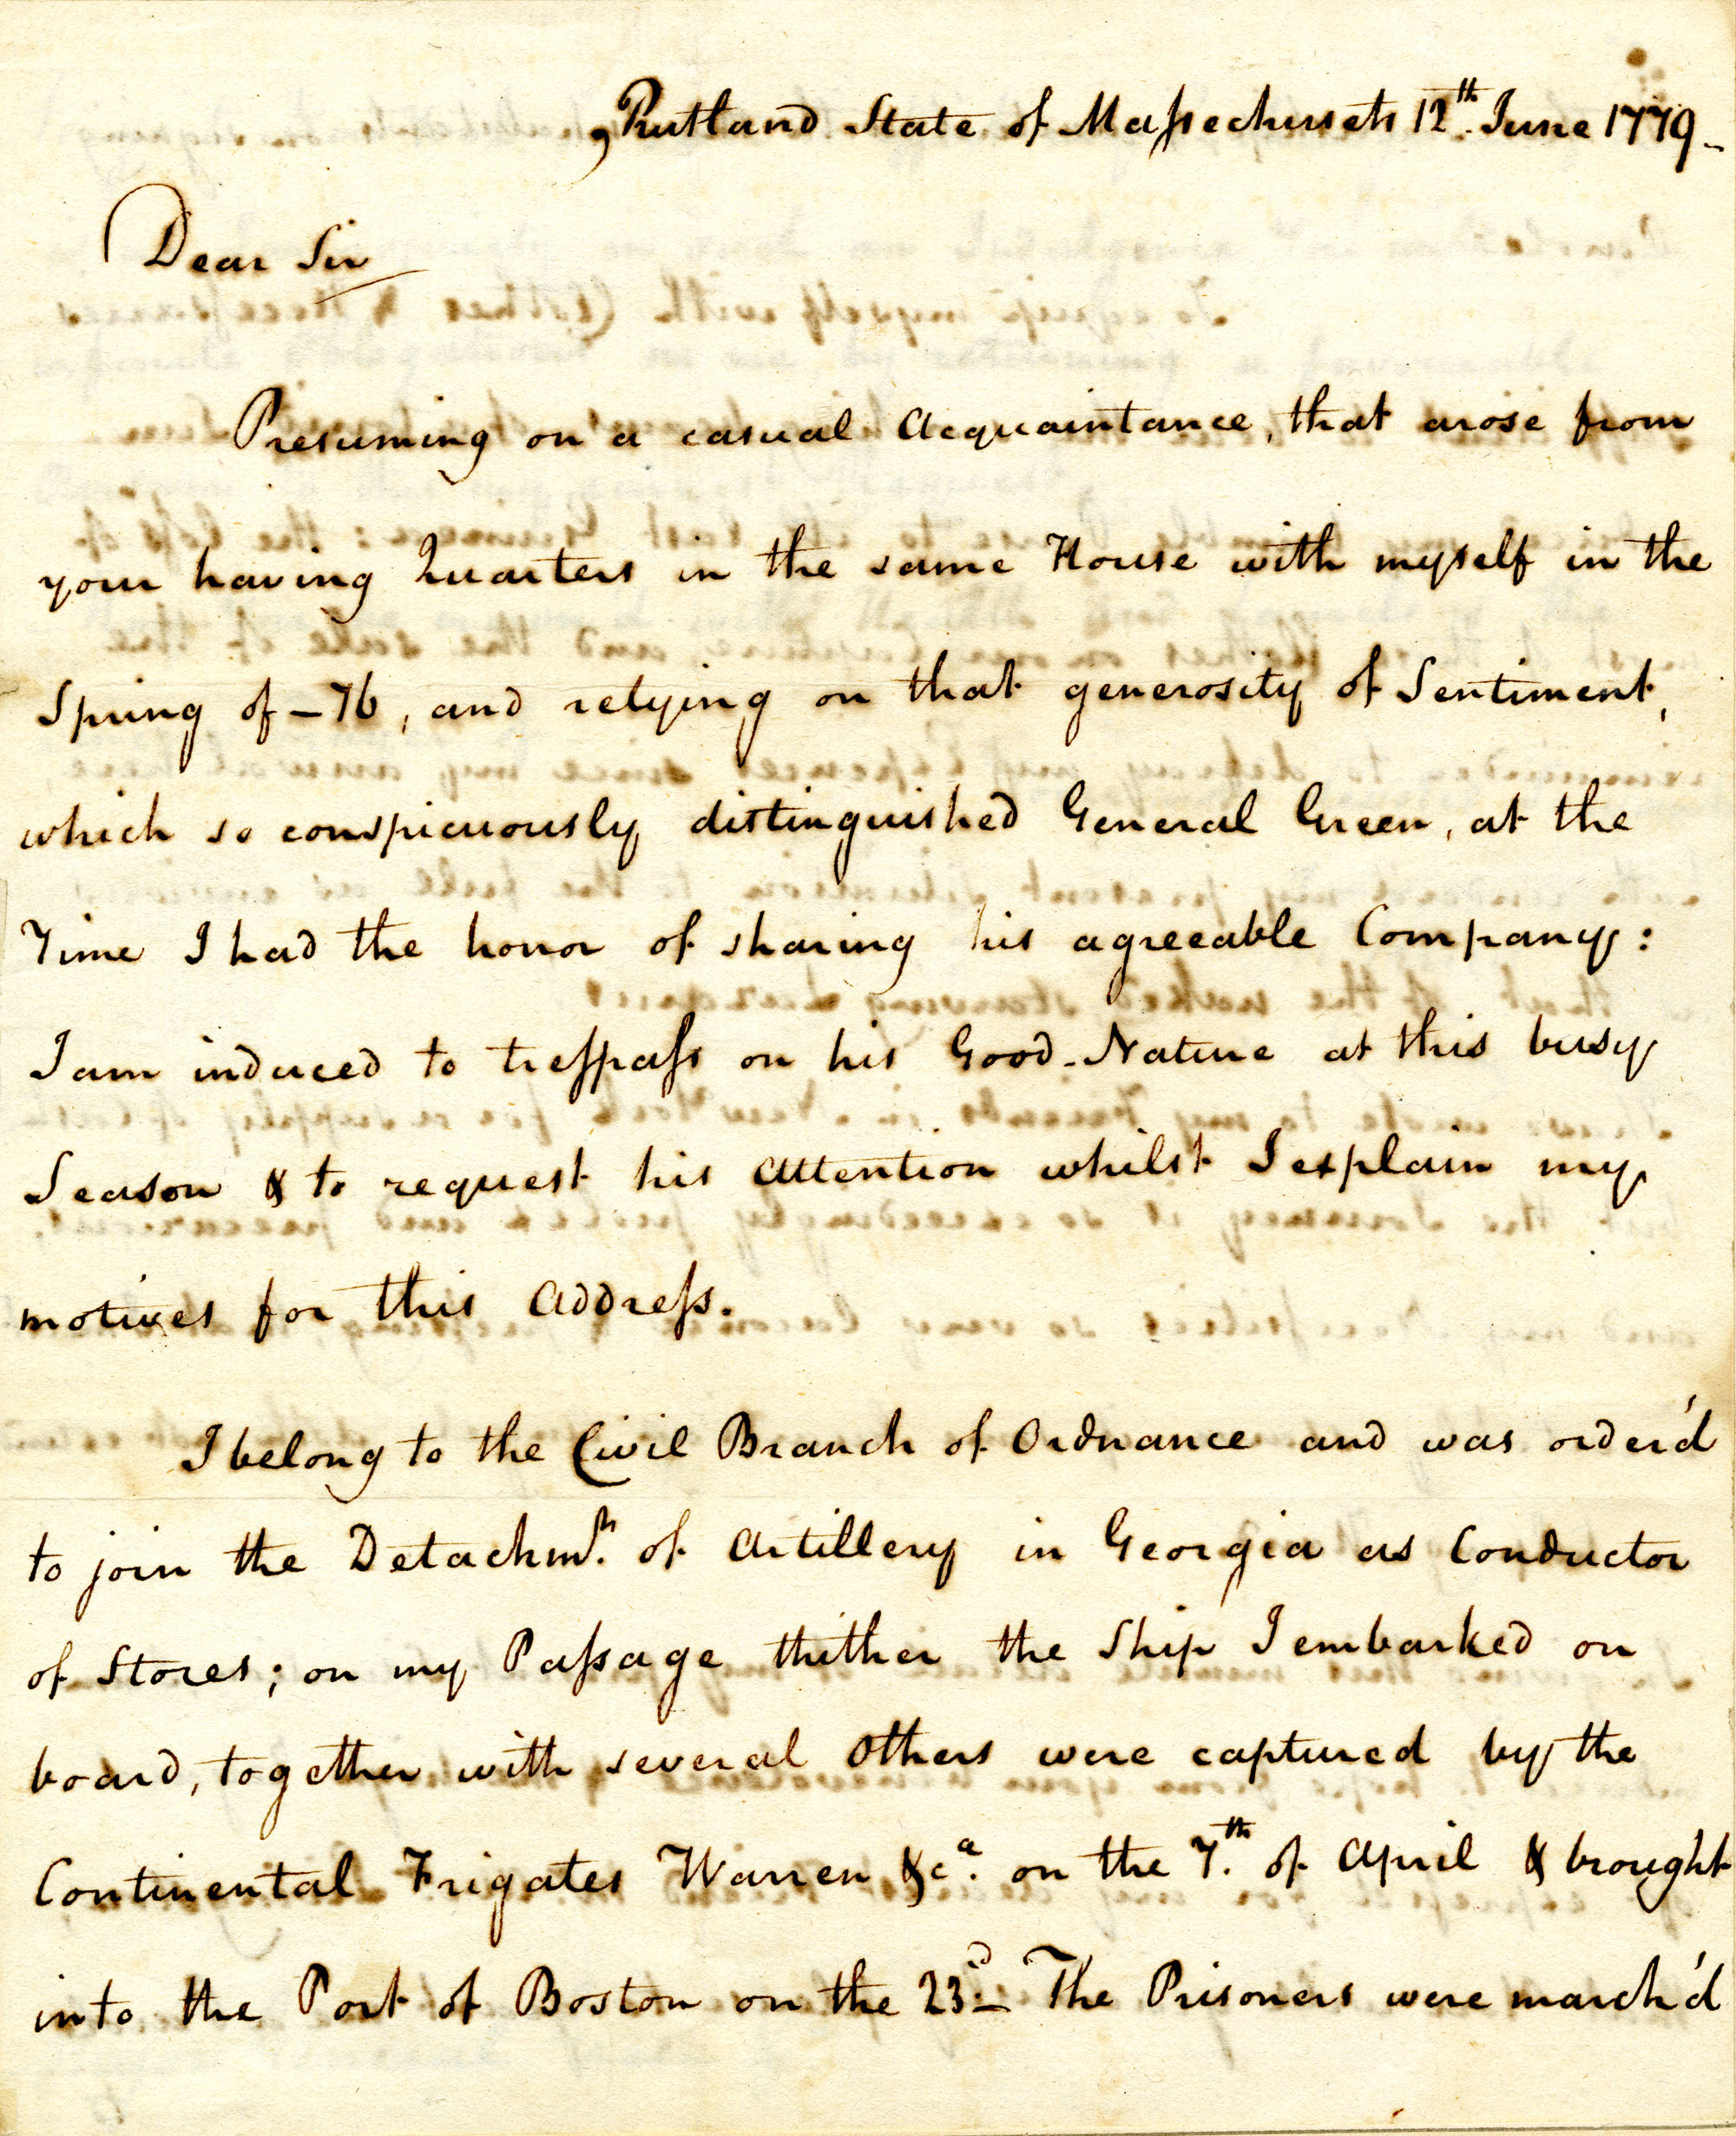 Letter from John King to Major General Nathanael Greene